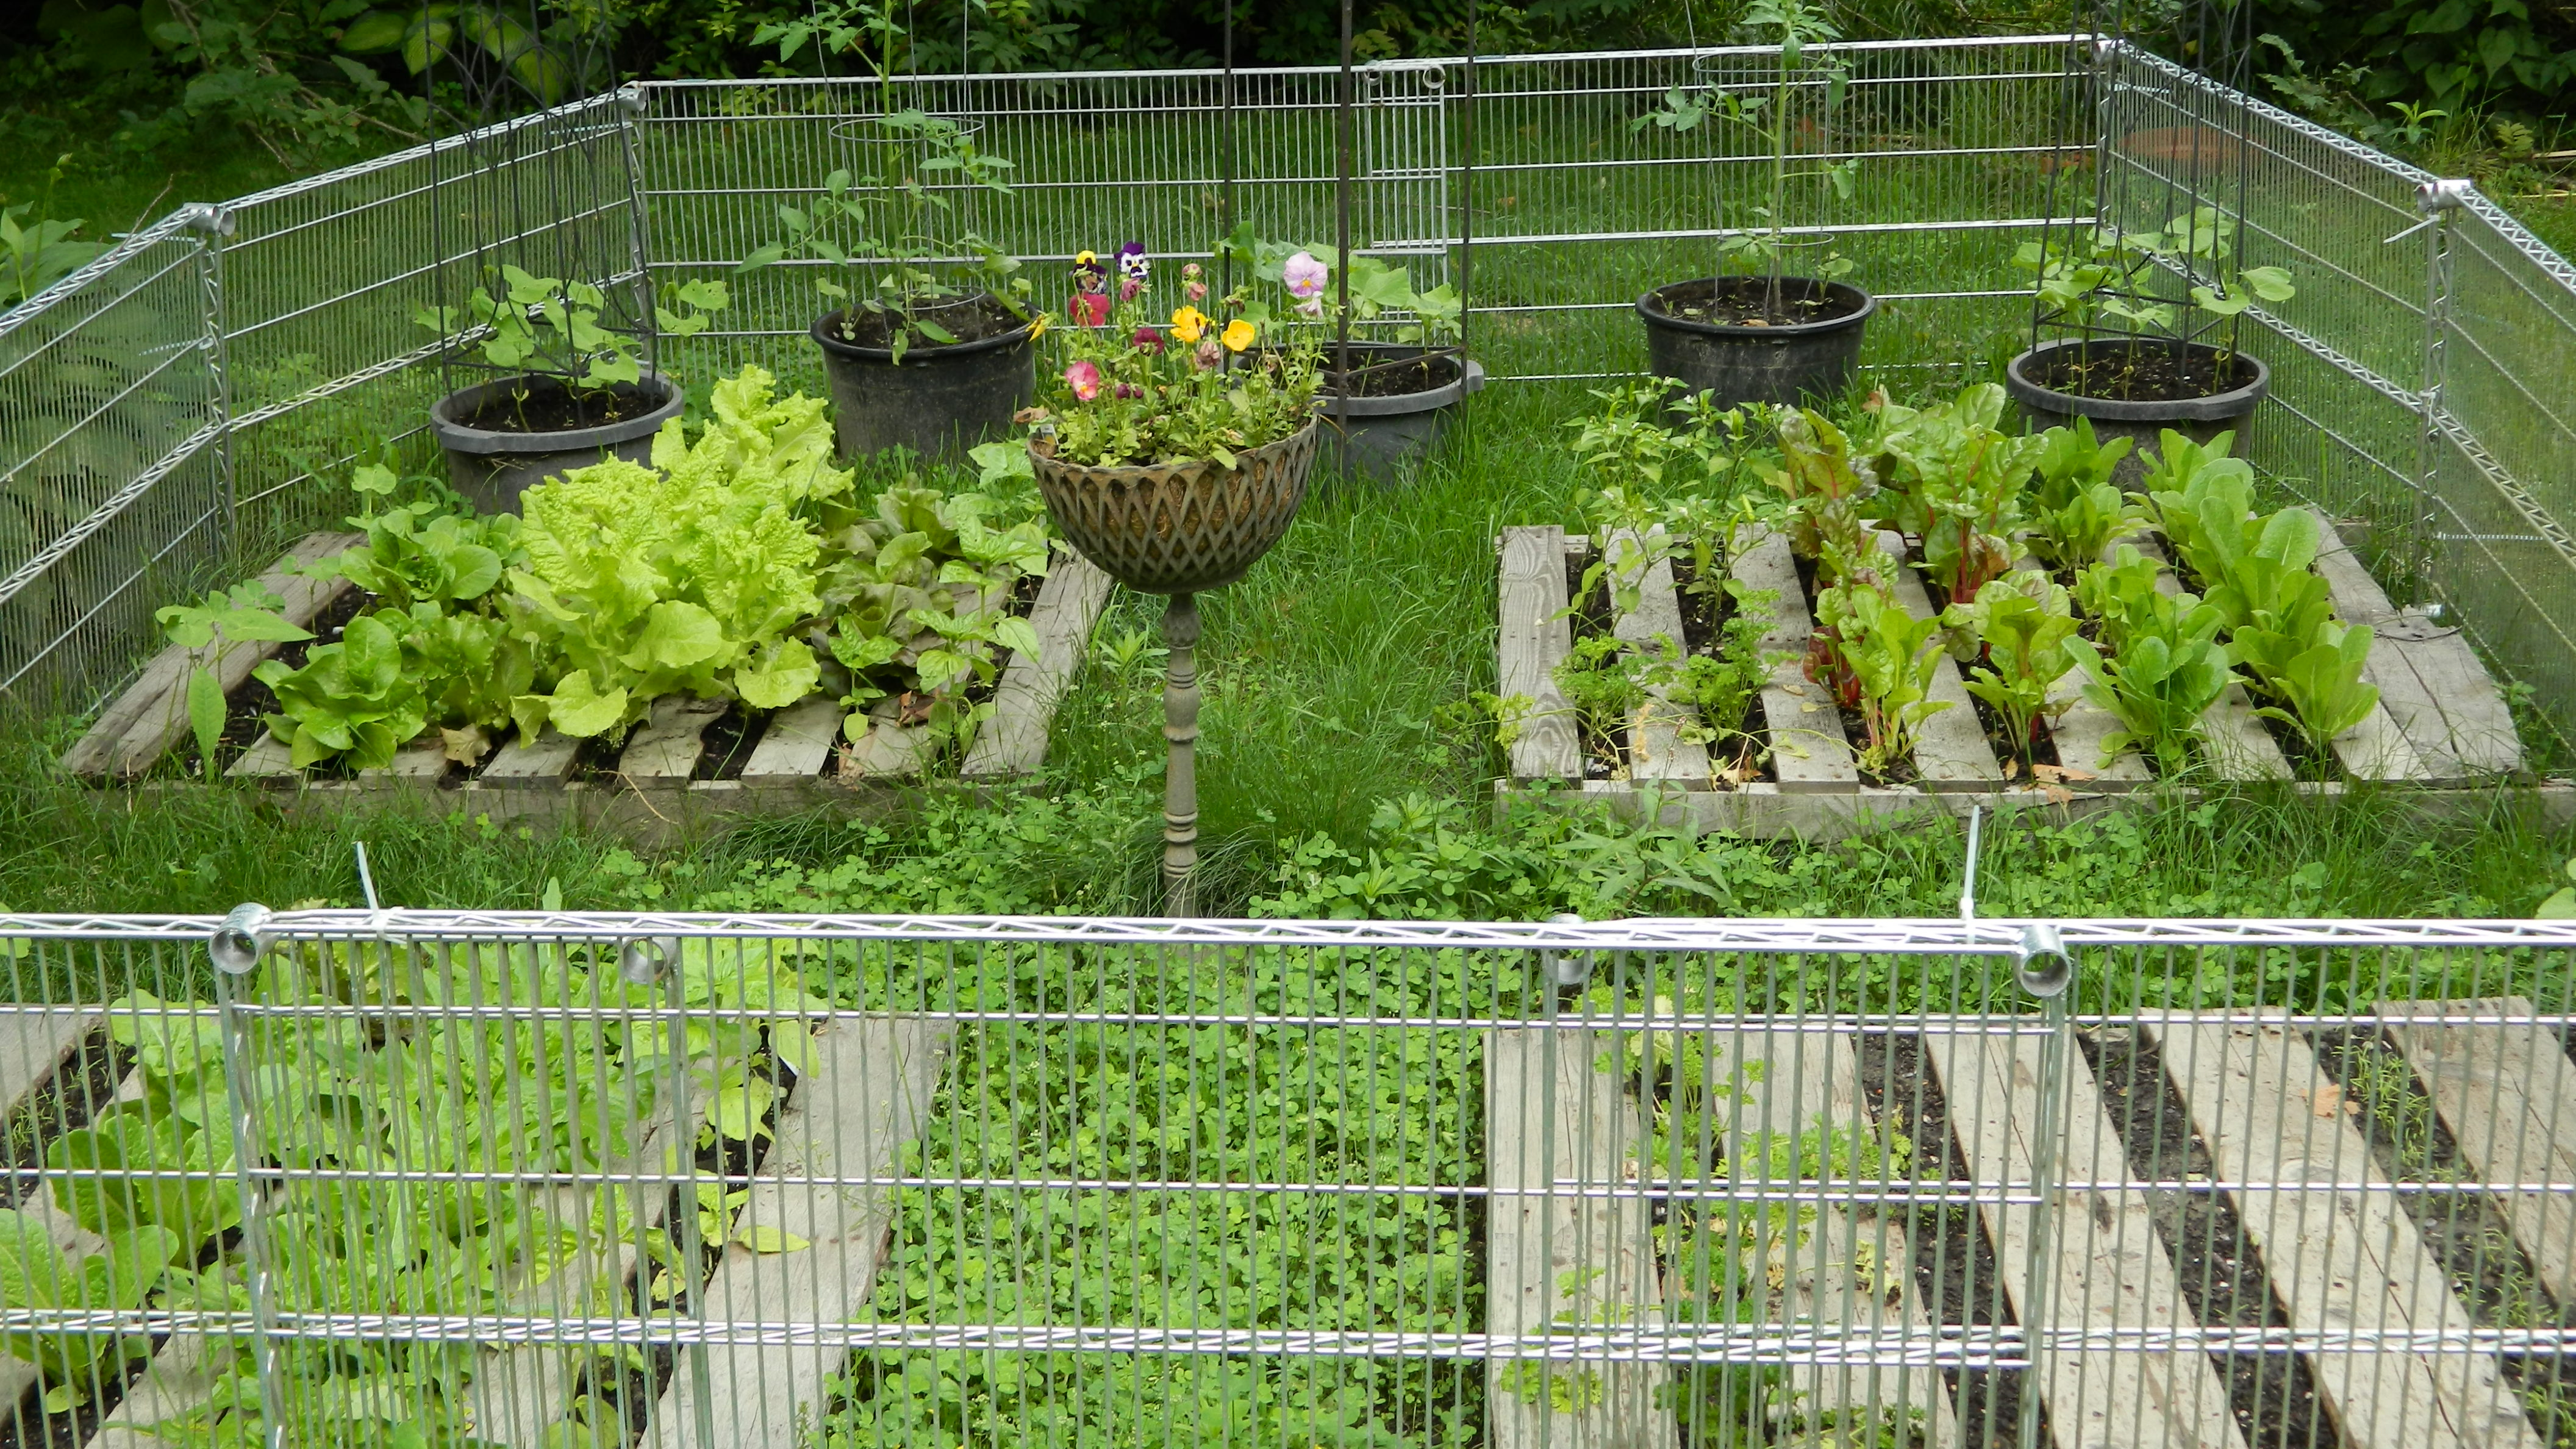 Exceptionnel Lettuces And Chard Going Great Guns. Beans And Dill Up. Tomatoes Growing  Well, Though Hard To See As Foliage Greenery Melds.